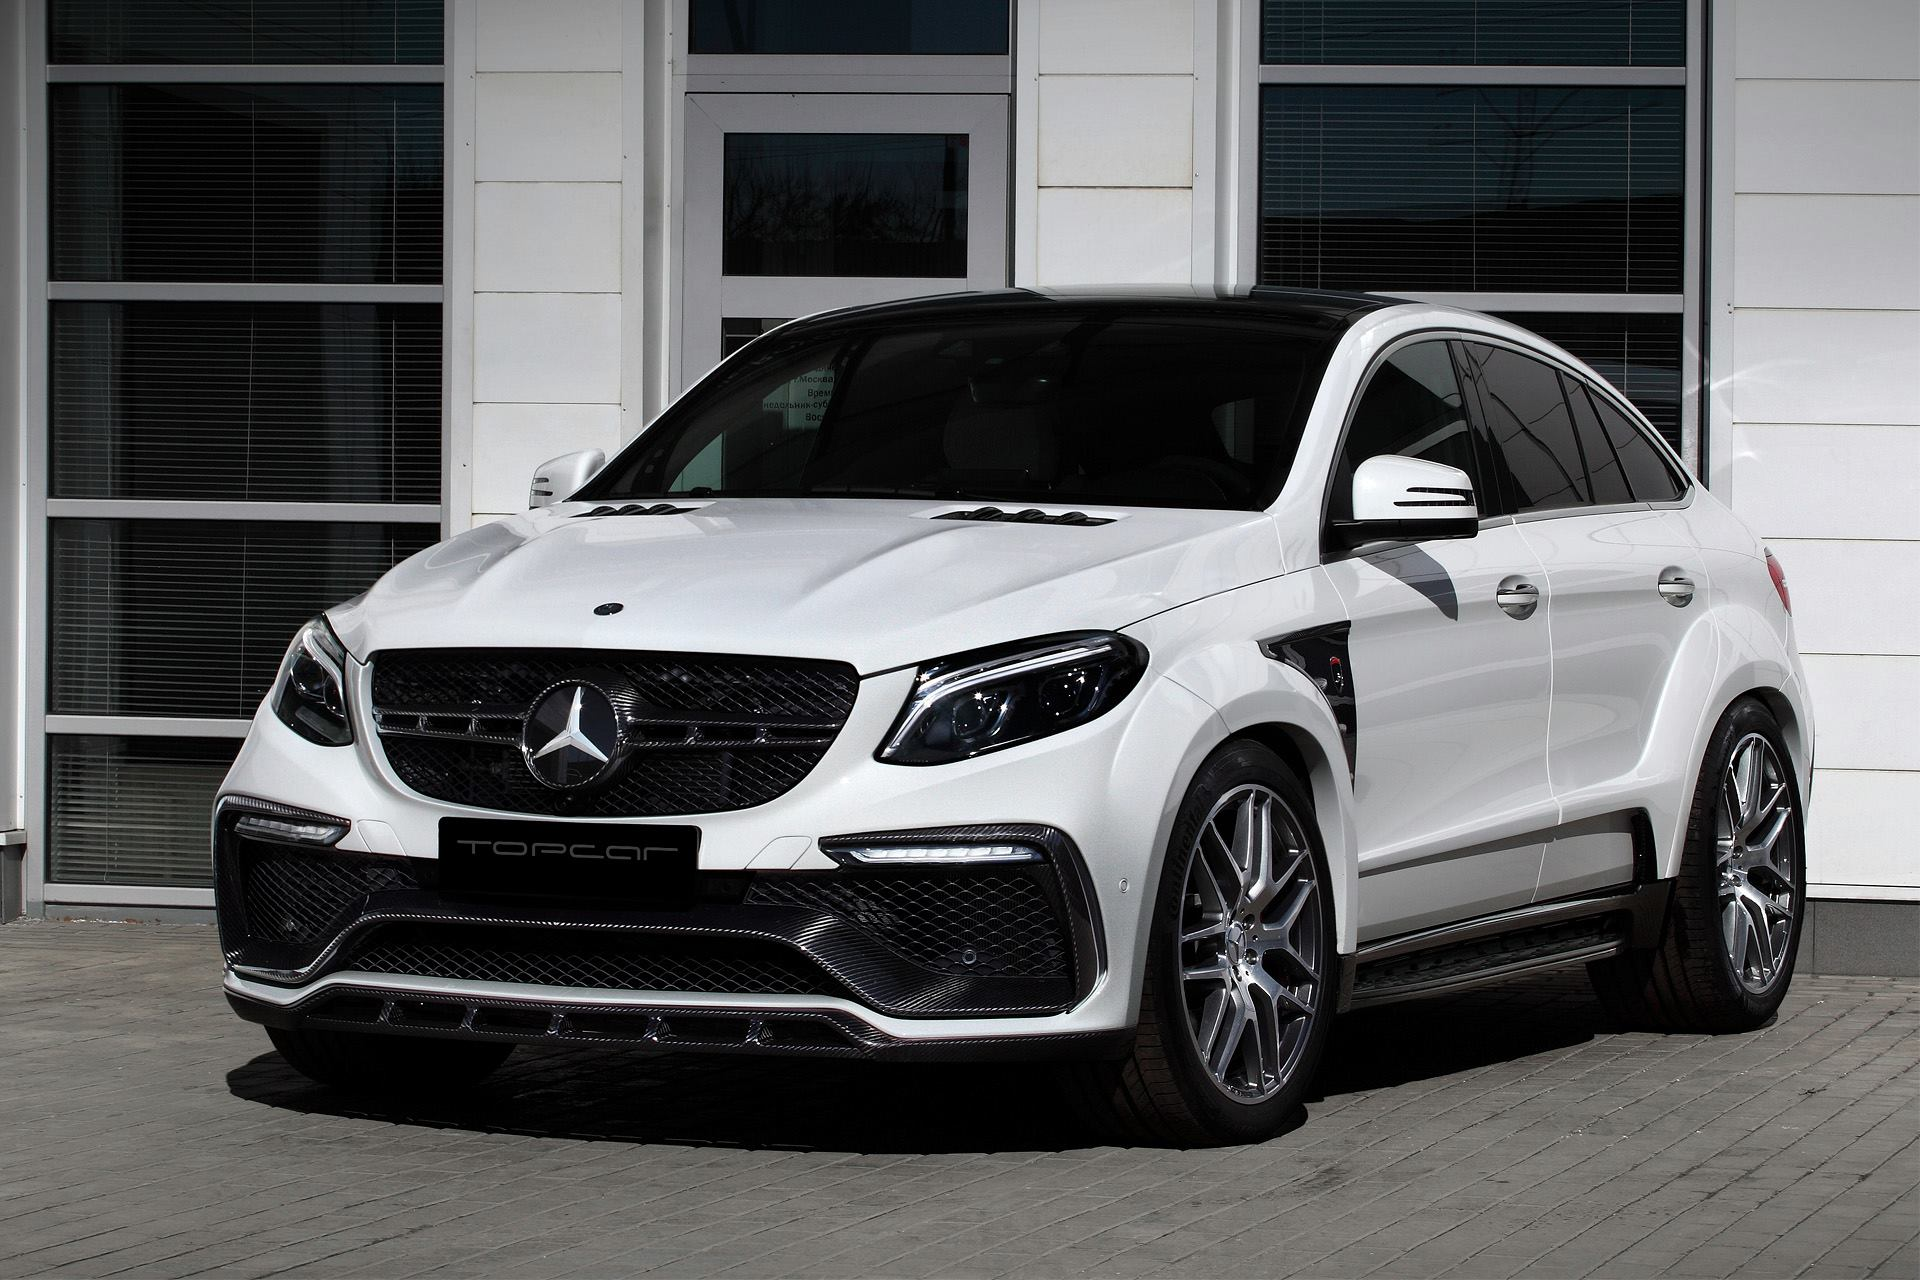 Mercedes Glc Coupe Tuning >> White Mercedes GLE Coupe 63S with Topcar Inferno Kit Has Carbon Details - autoevolution